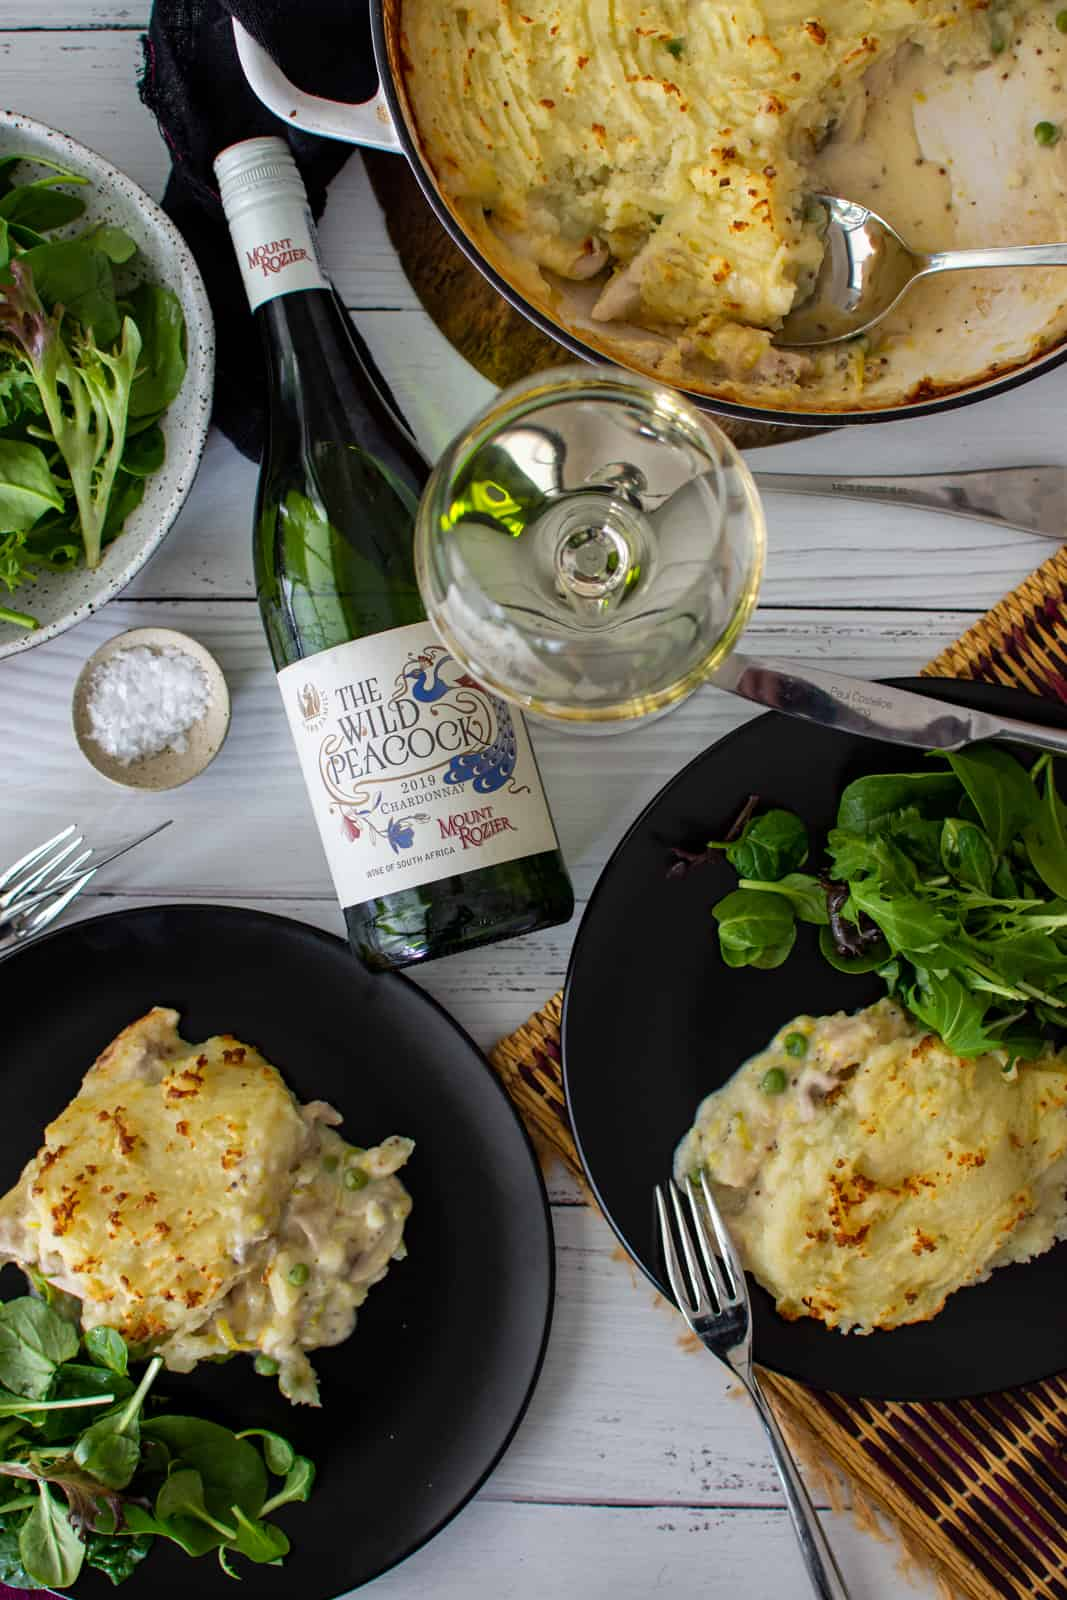 chicken and mushroom pie on plates with salad and a bottle of chardonnay next to them